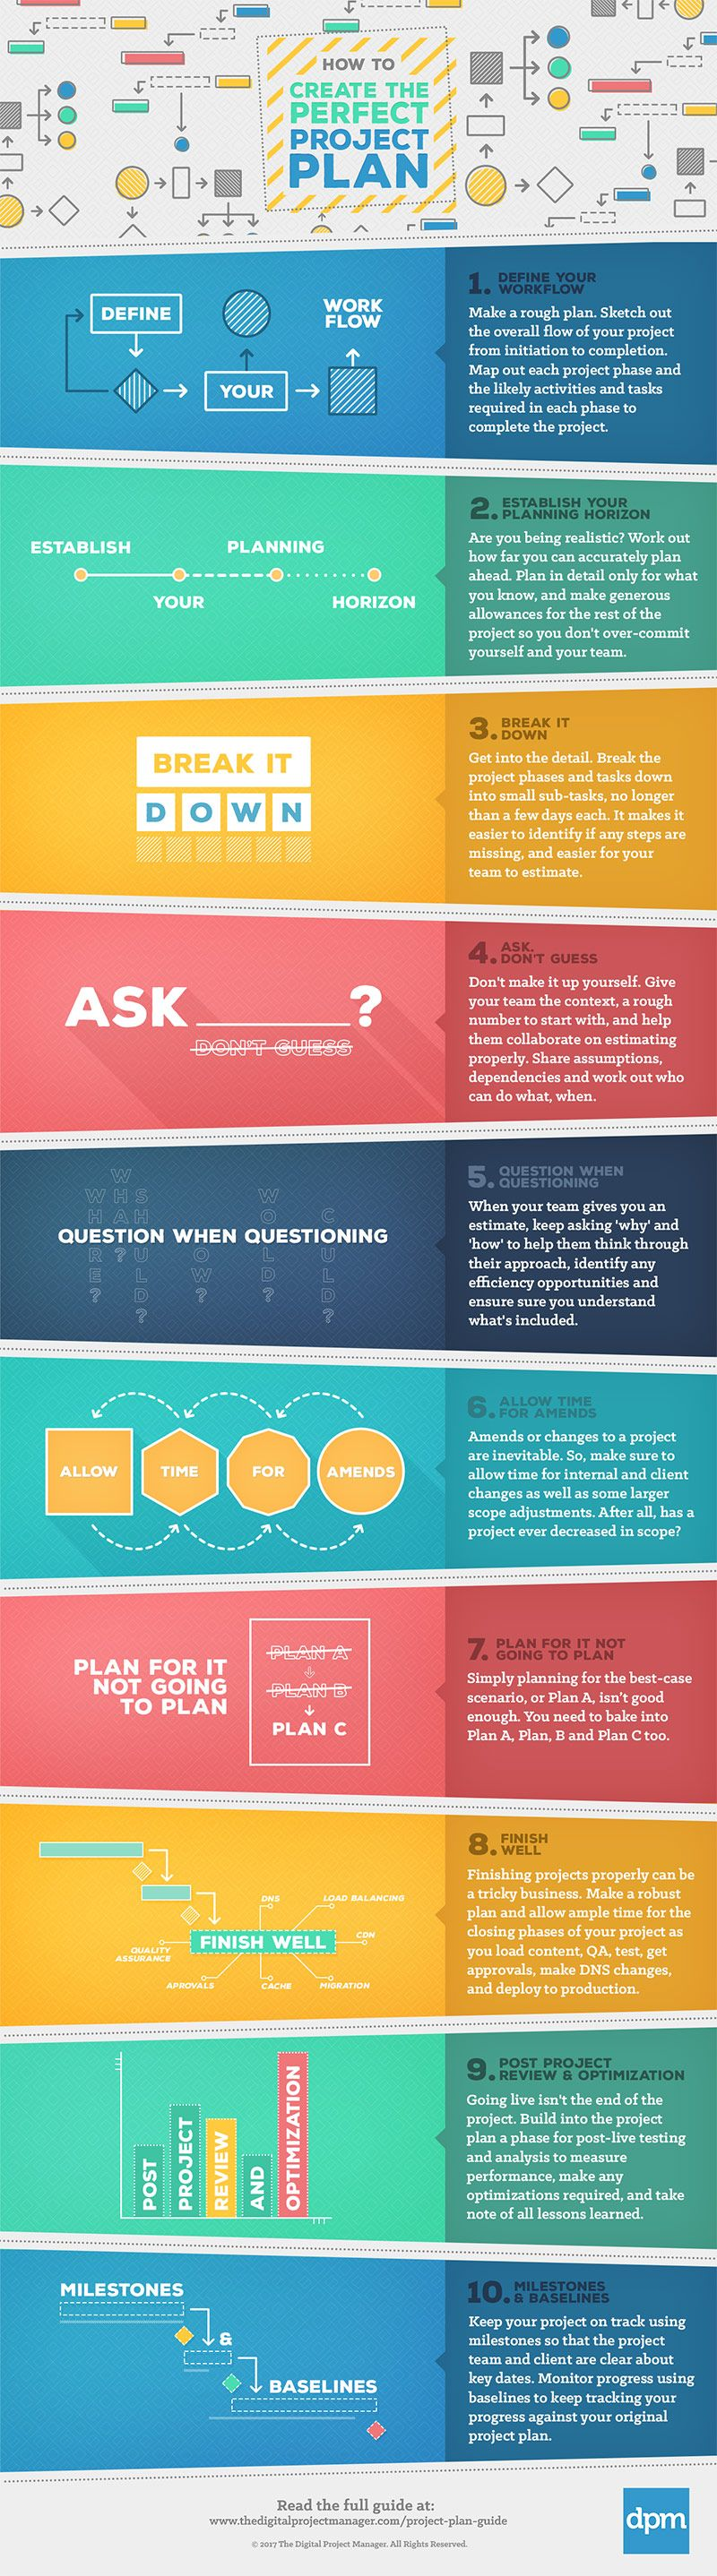 How To Create A Perfect Project Plan  Infographic  Project